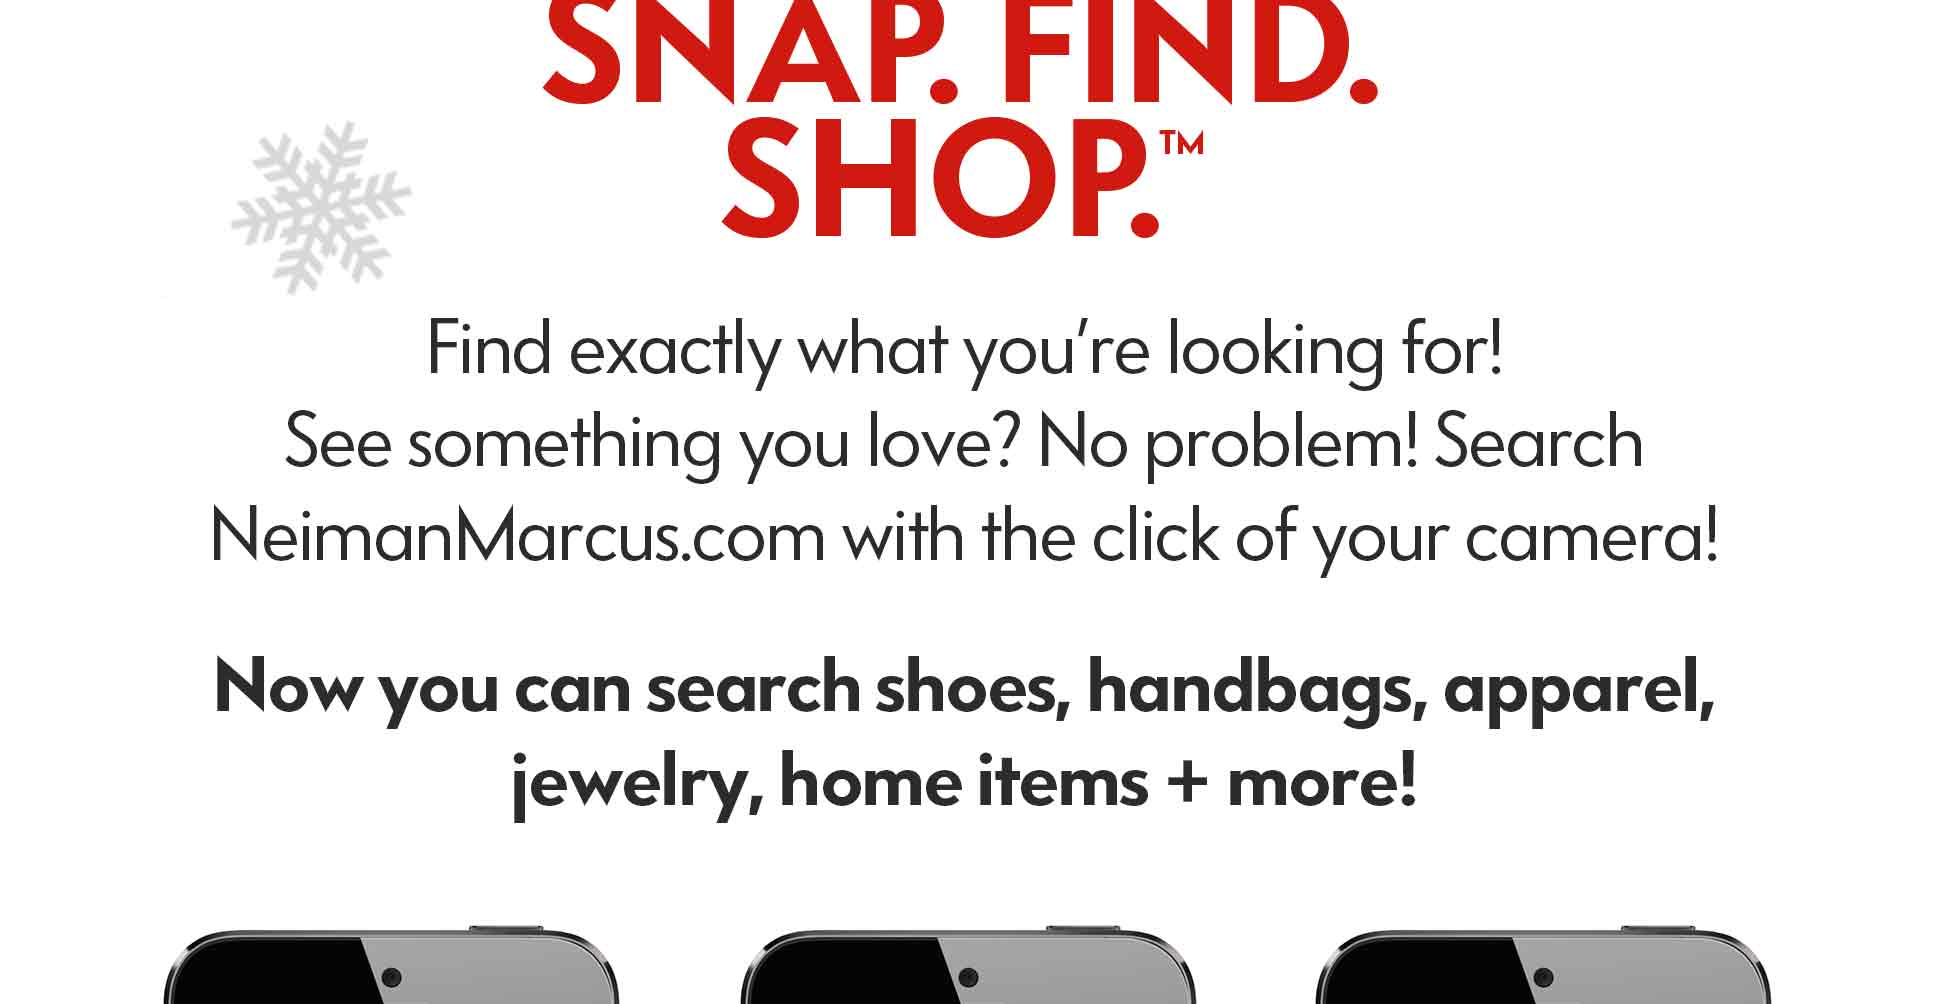 Snap Find Shop